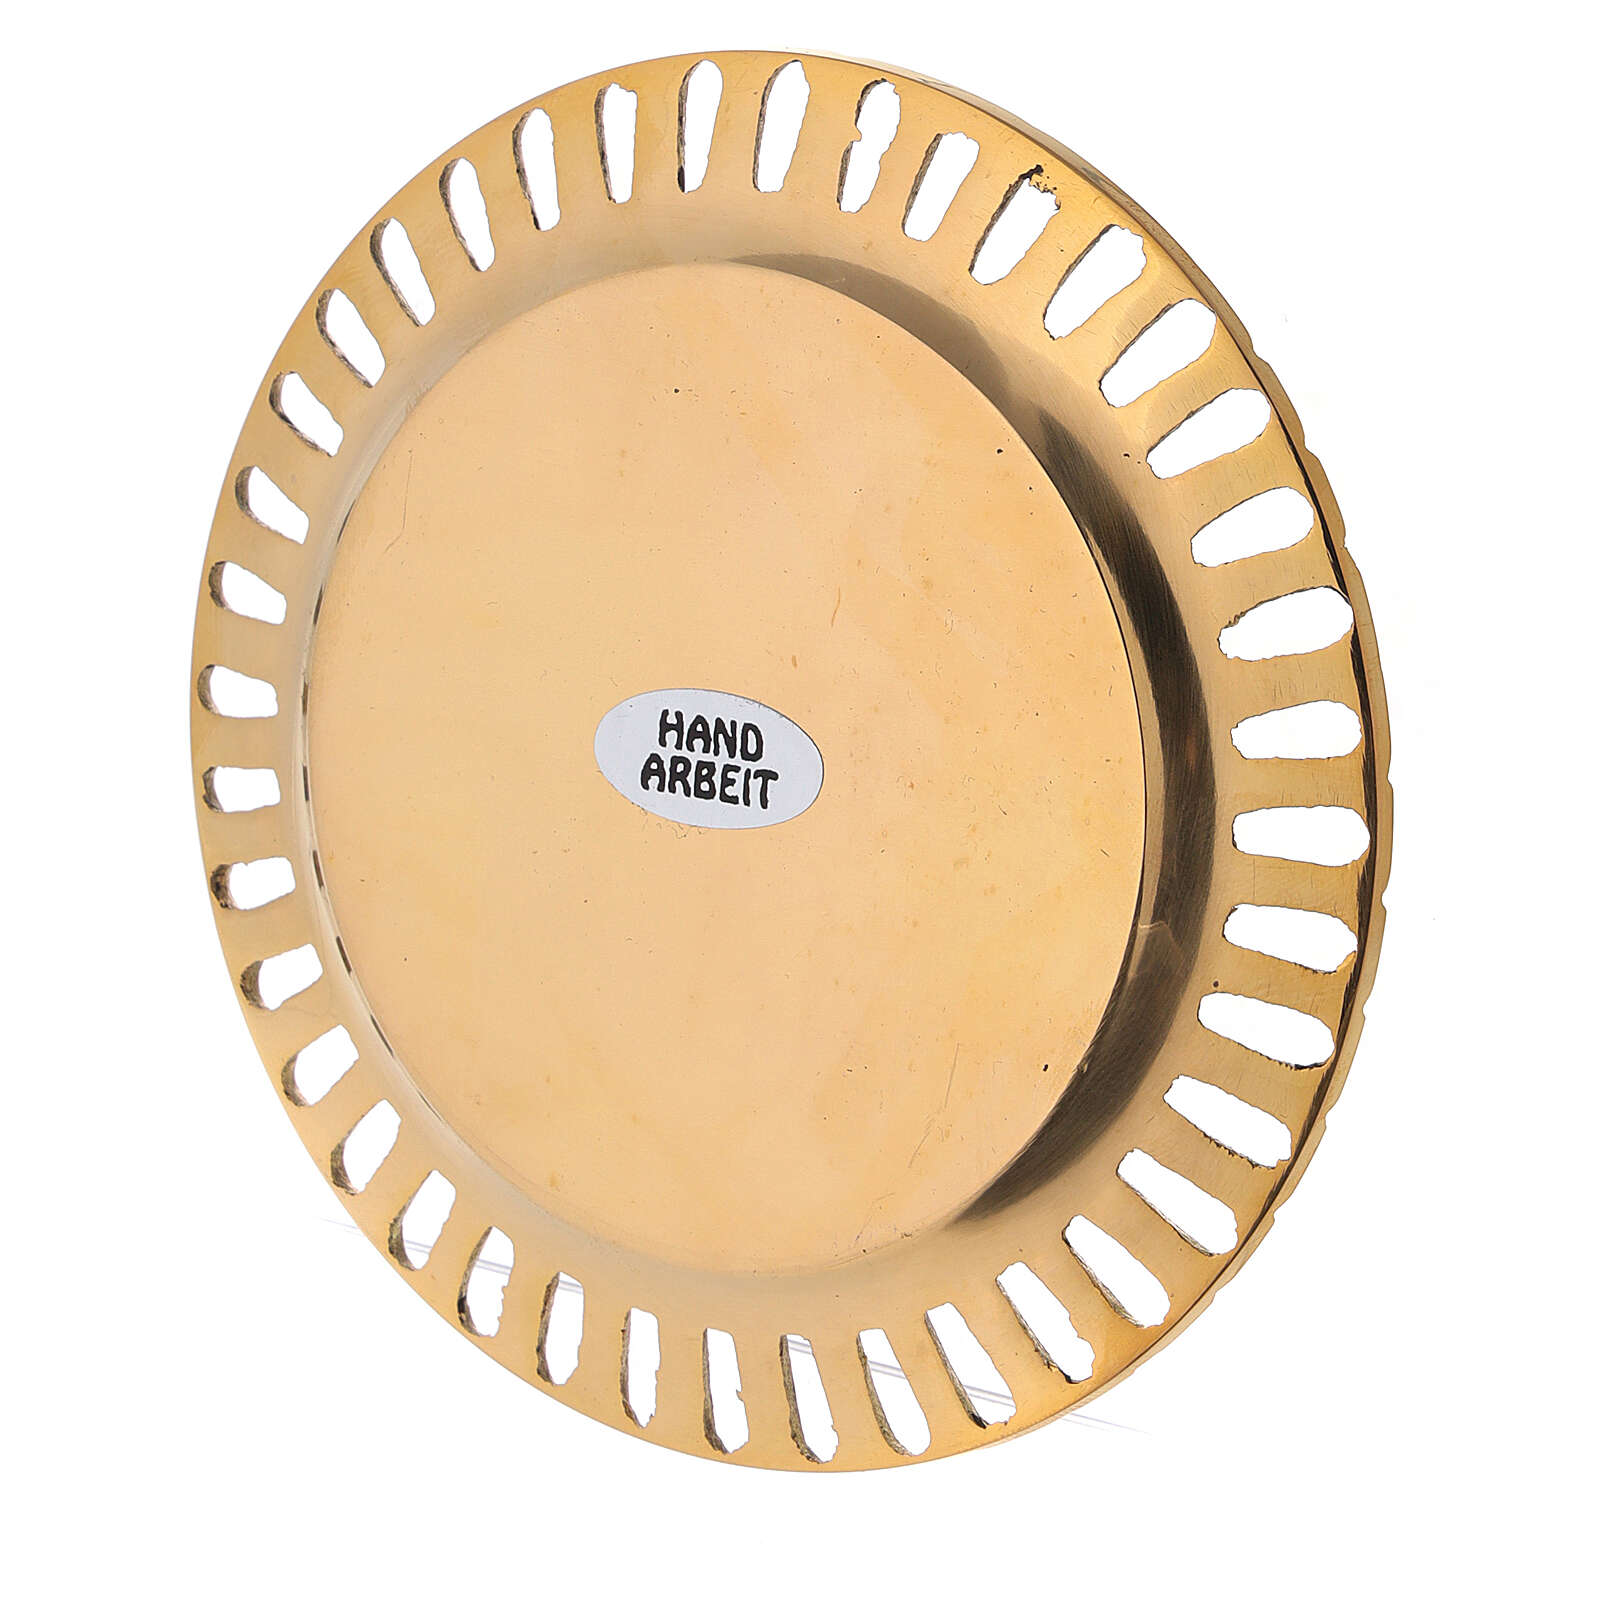 Perforated candle holder plate in polished gold plated brass d. 2 3/4 in 3